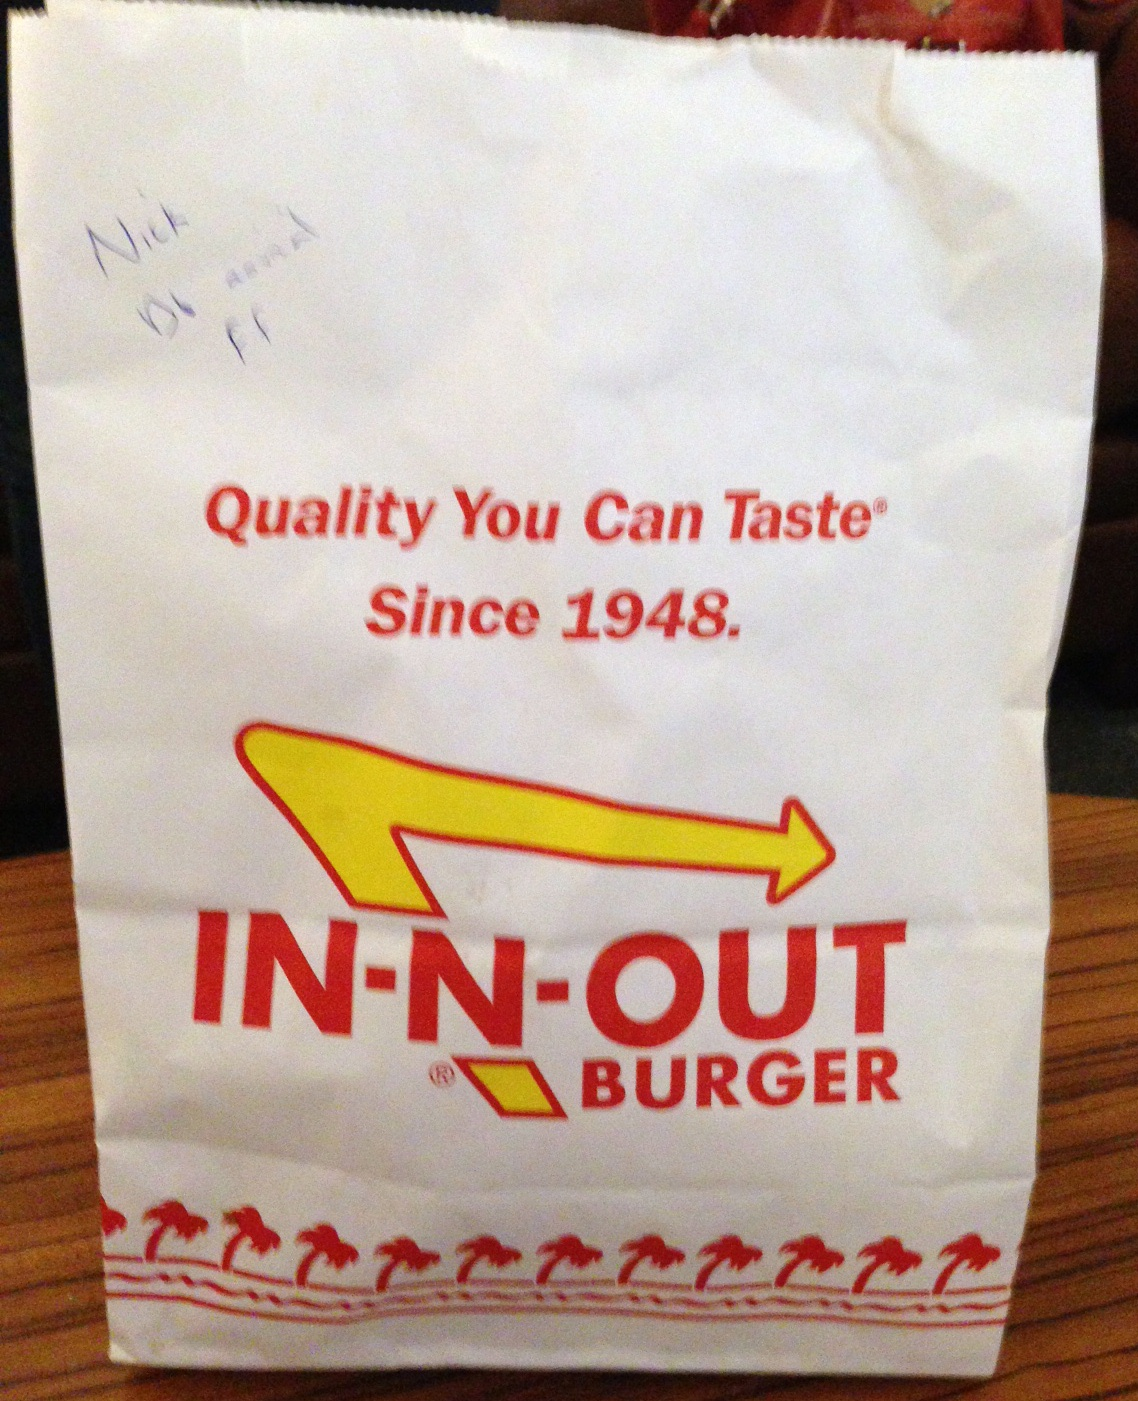 News About Women: In-N-Out